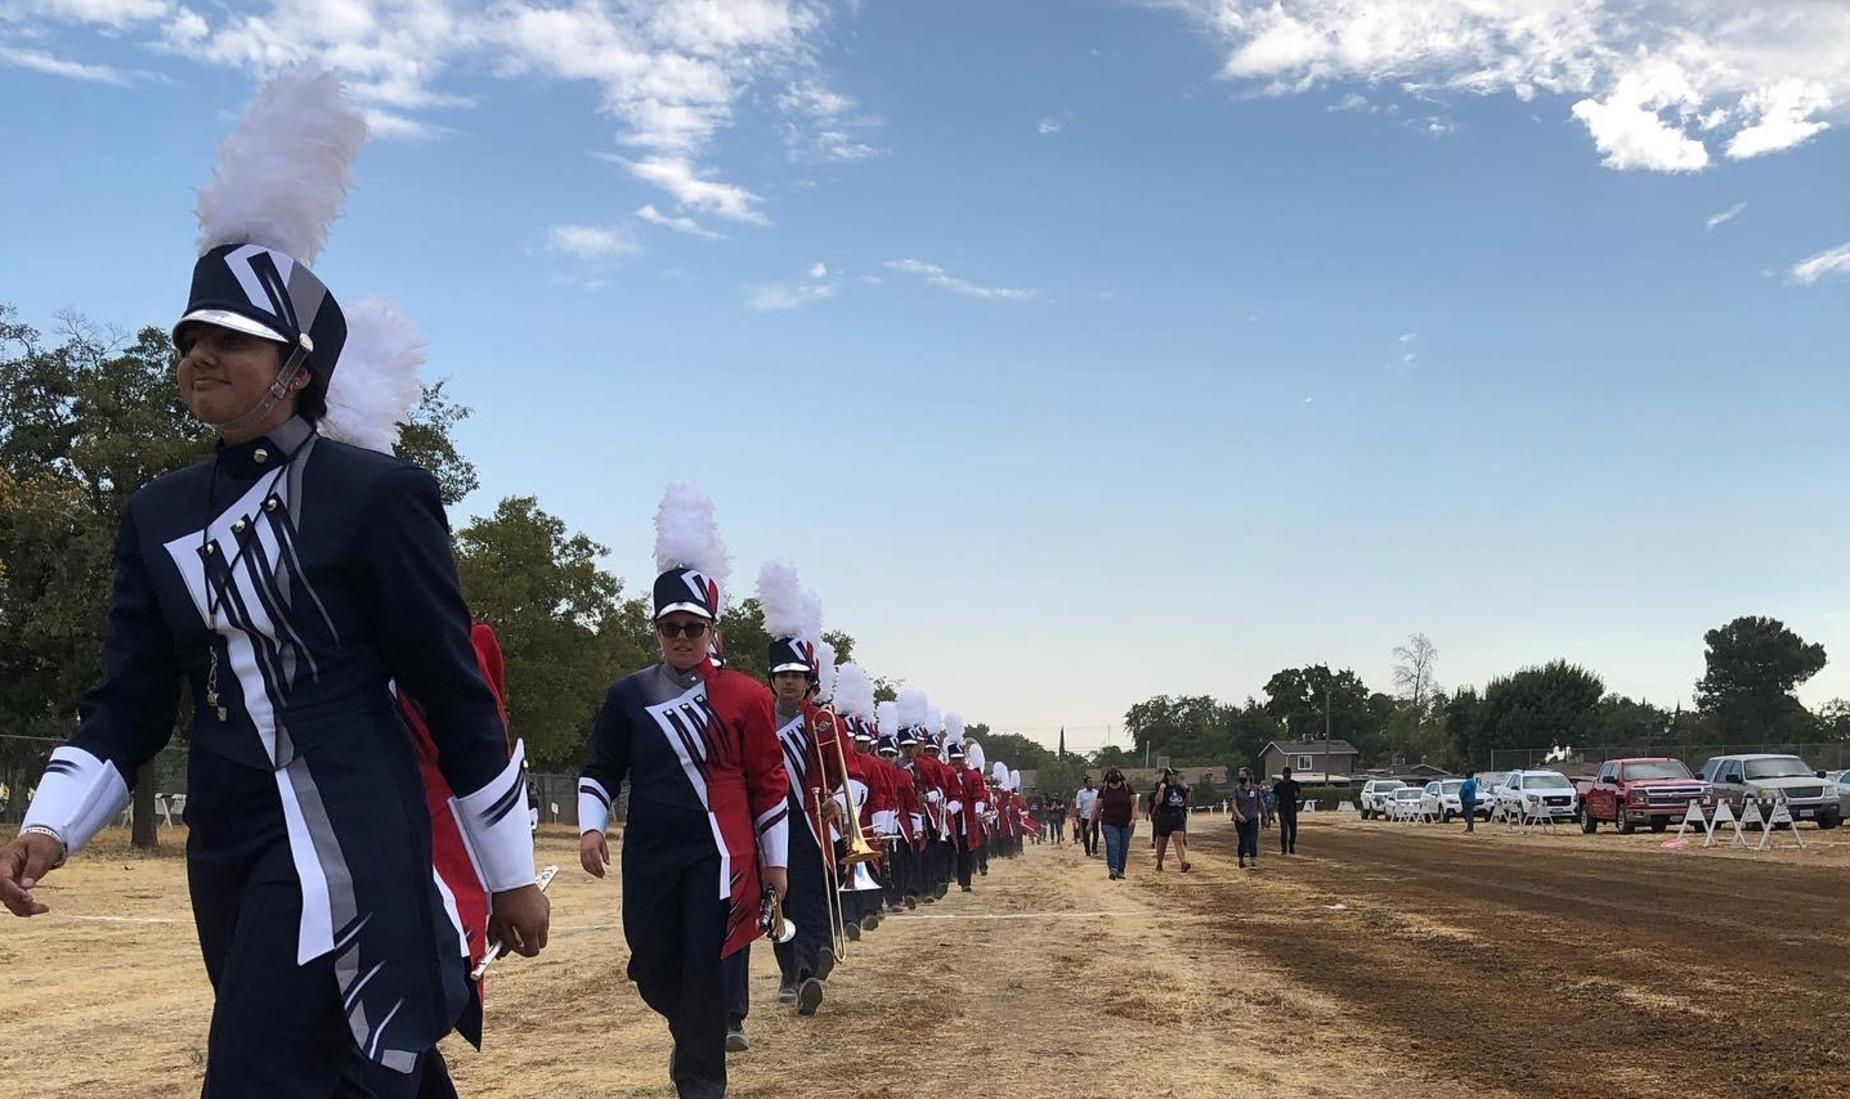 picture of band marching